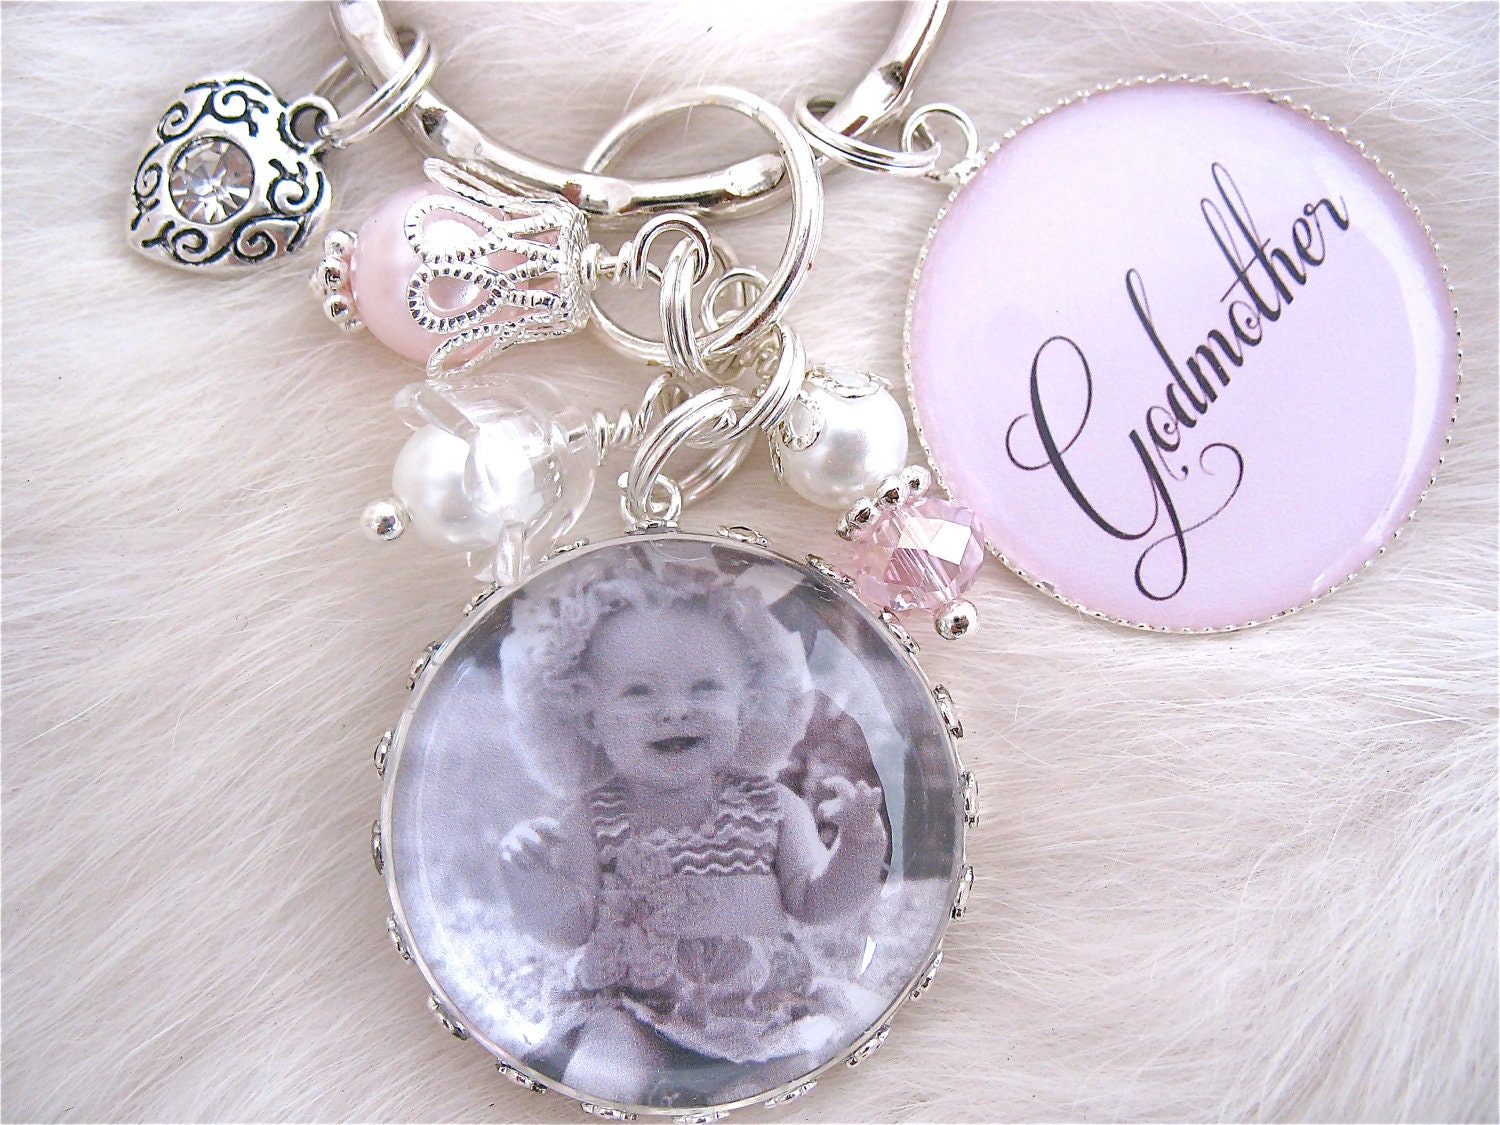 Godparent Keychain Gift For Godparents Gift For: GODMOTHER GIFT Baptism Gift Photo Pendant Keychain Necklace